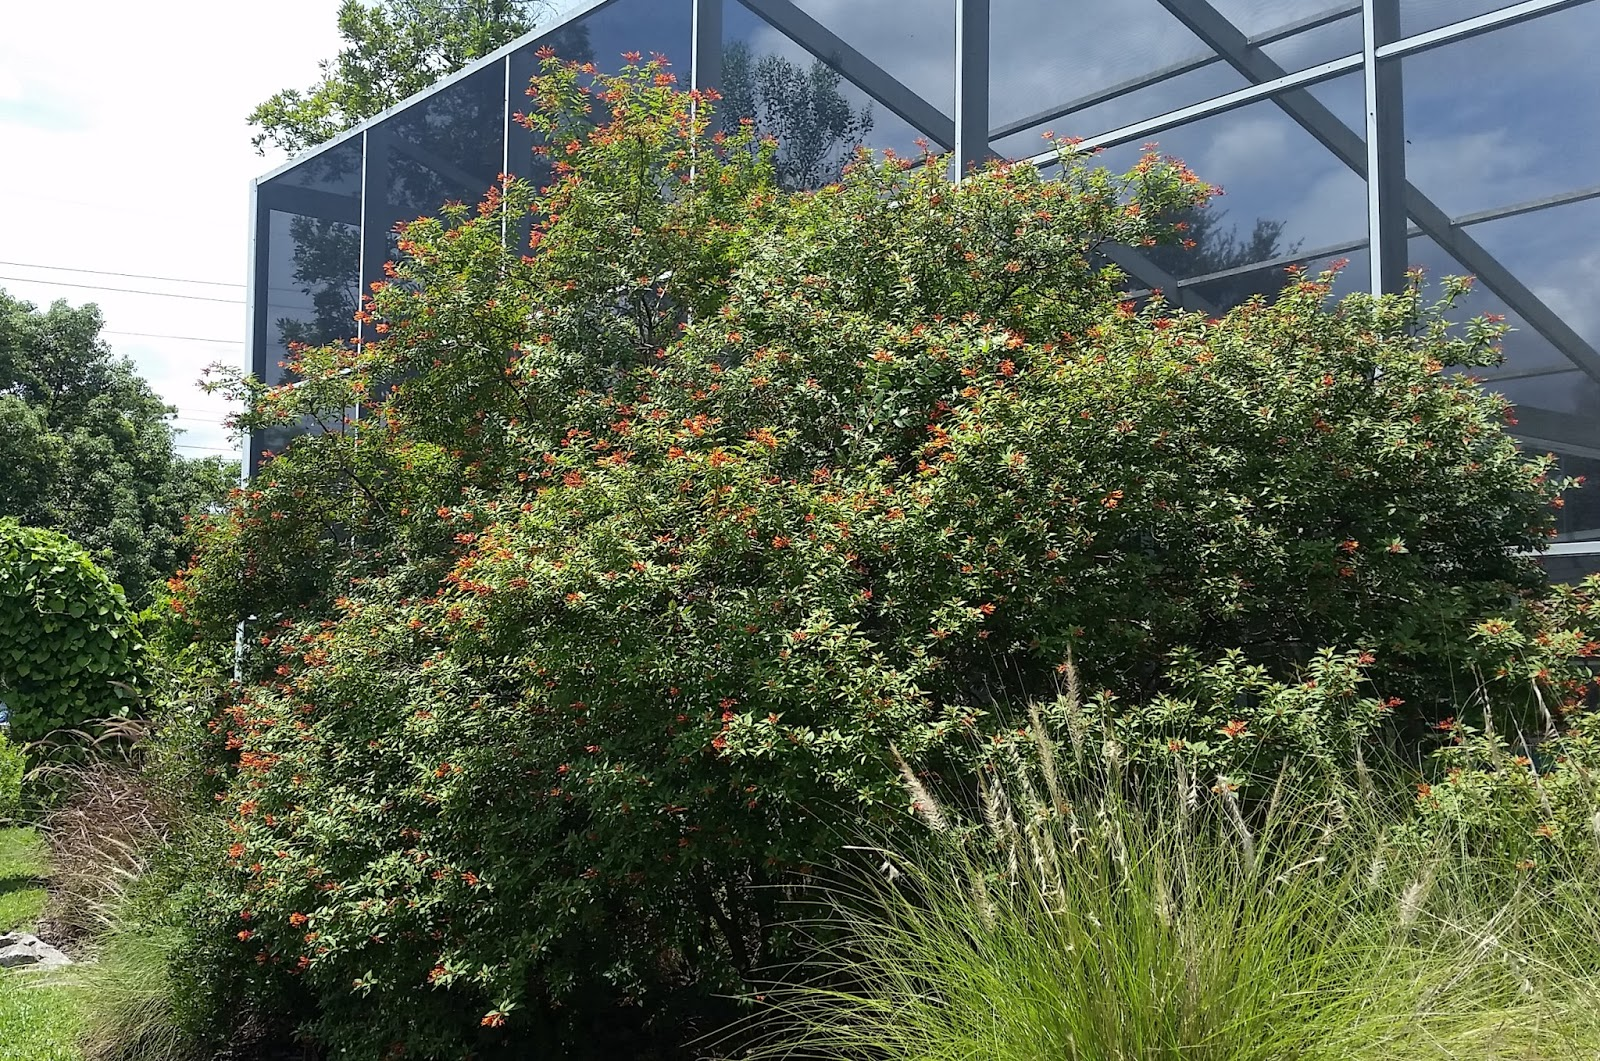 Firebush Can Quickly Grow Into A Tall Shrub And Can Be Pruned Into A Small  Tree. If You Donu0027t Have Enough Room For Such A Large Plant Look For The  Dwarf ...